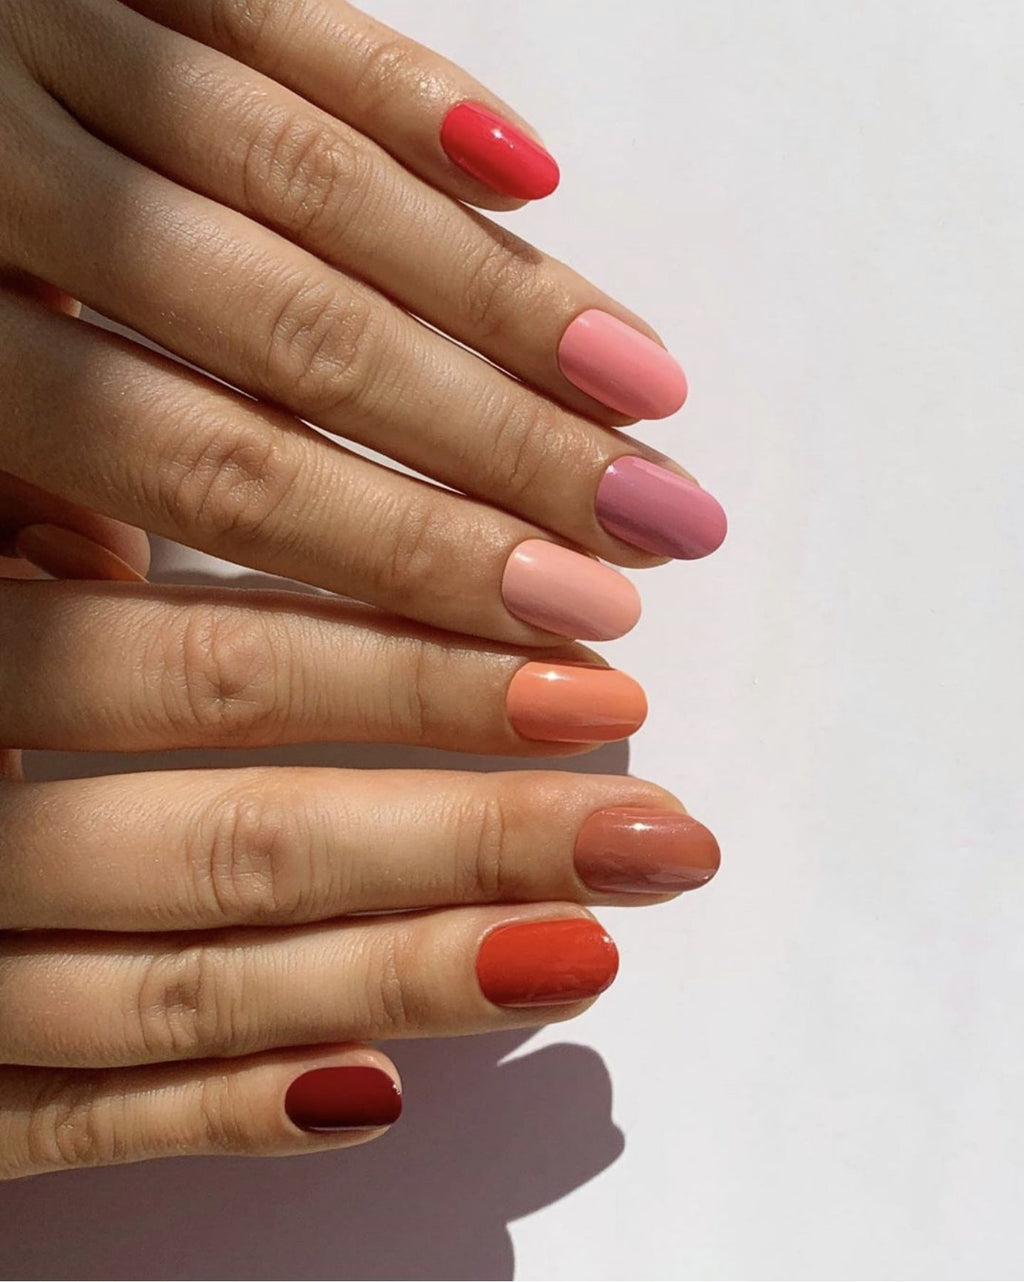 THE SKITTLE MANICURE IS TAKING OVER INSTAGRAM